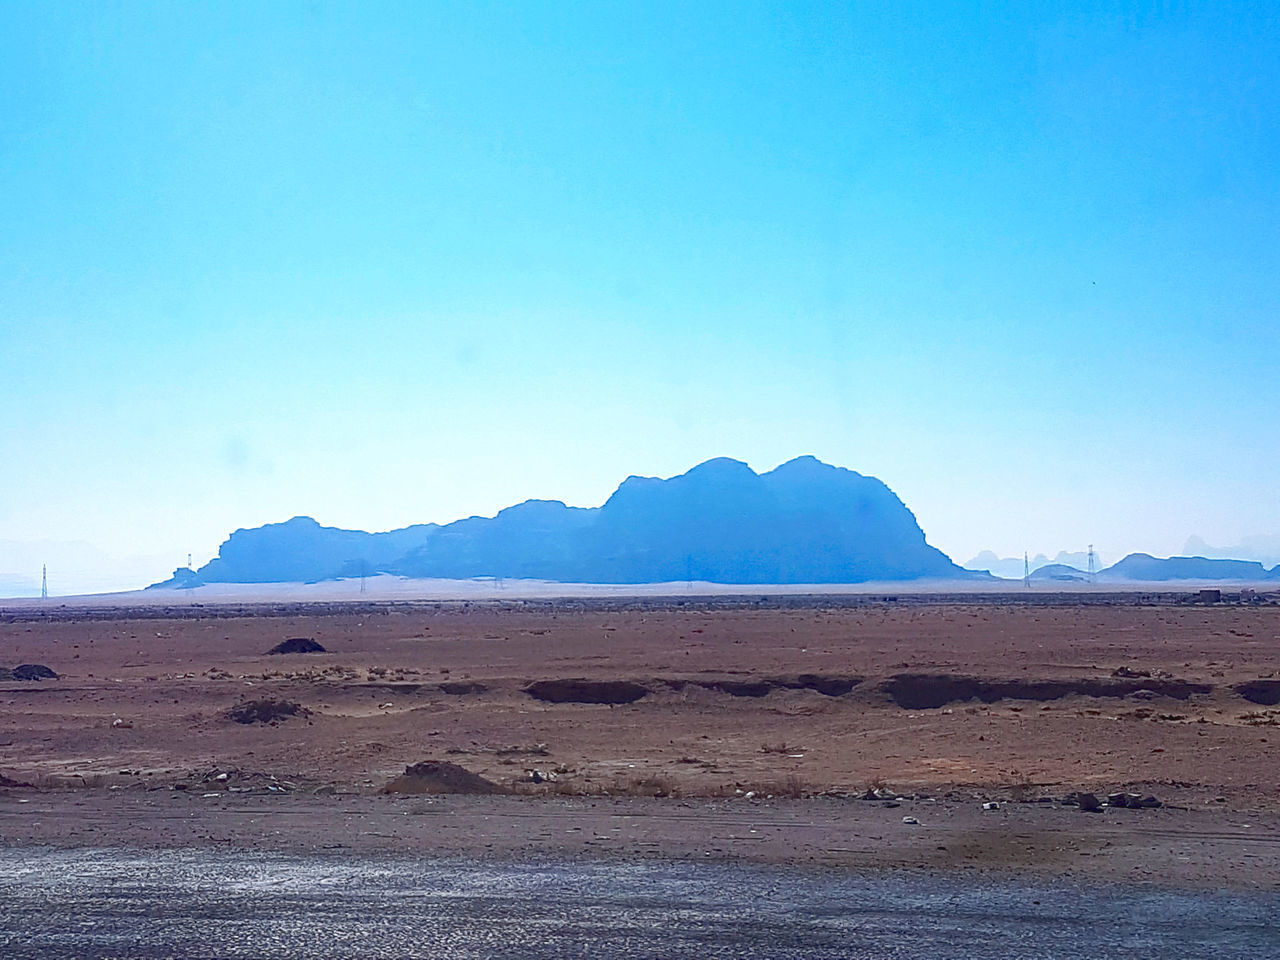 sky, scenics - nature, mountain, tranquil scene, beauty in nature, copy space, non-urban scene, tranquility, landscape, desert, blue, nature, land, clear sky, no people, environment, day, arid climate, remote, climate, mountain range, outdoors, salt flat